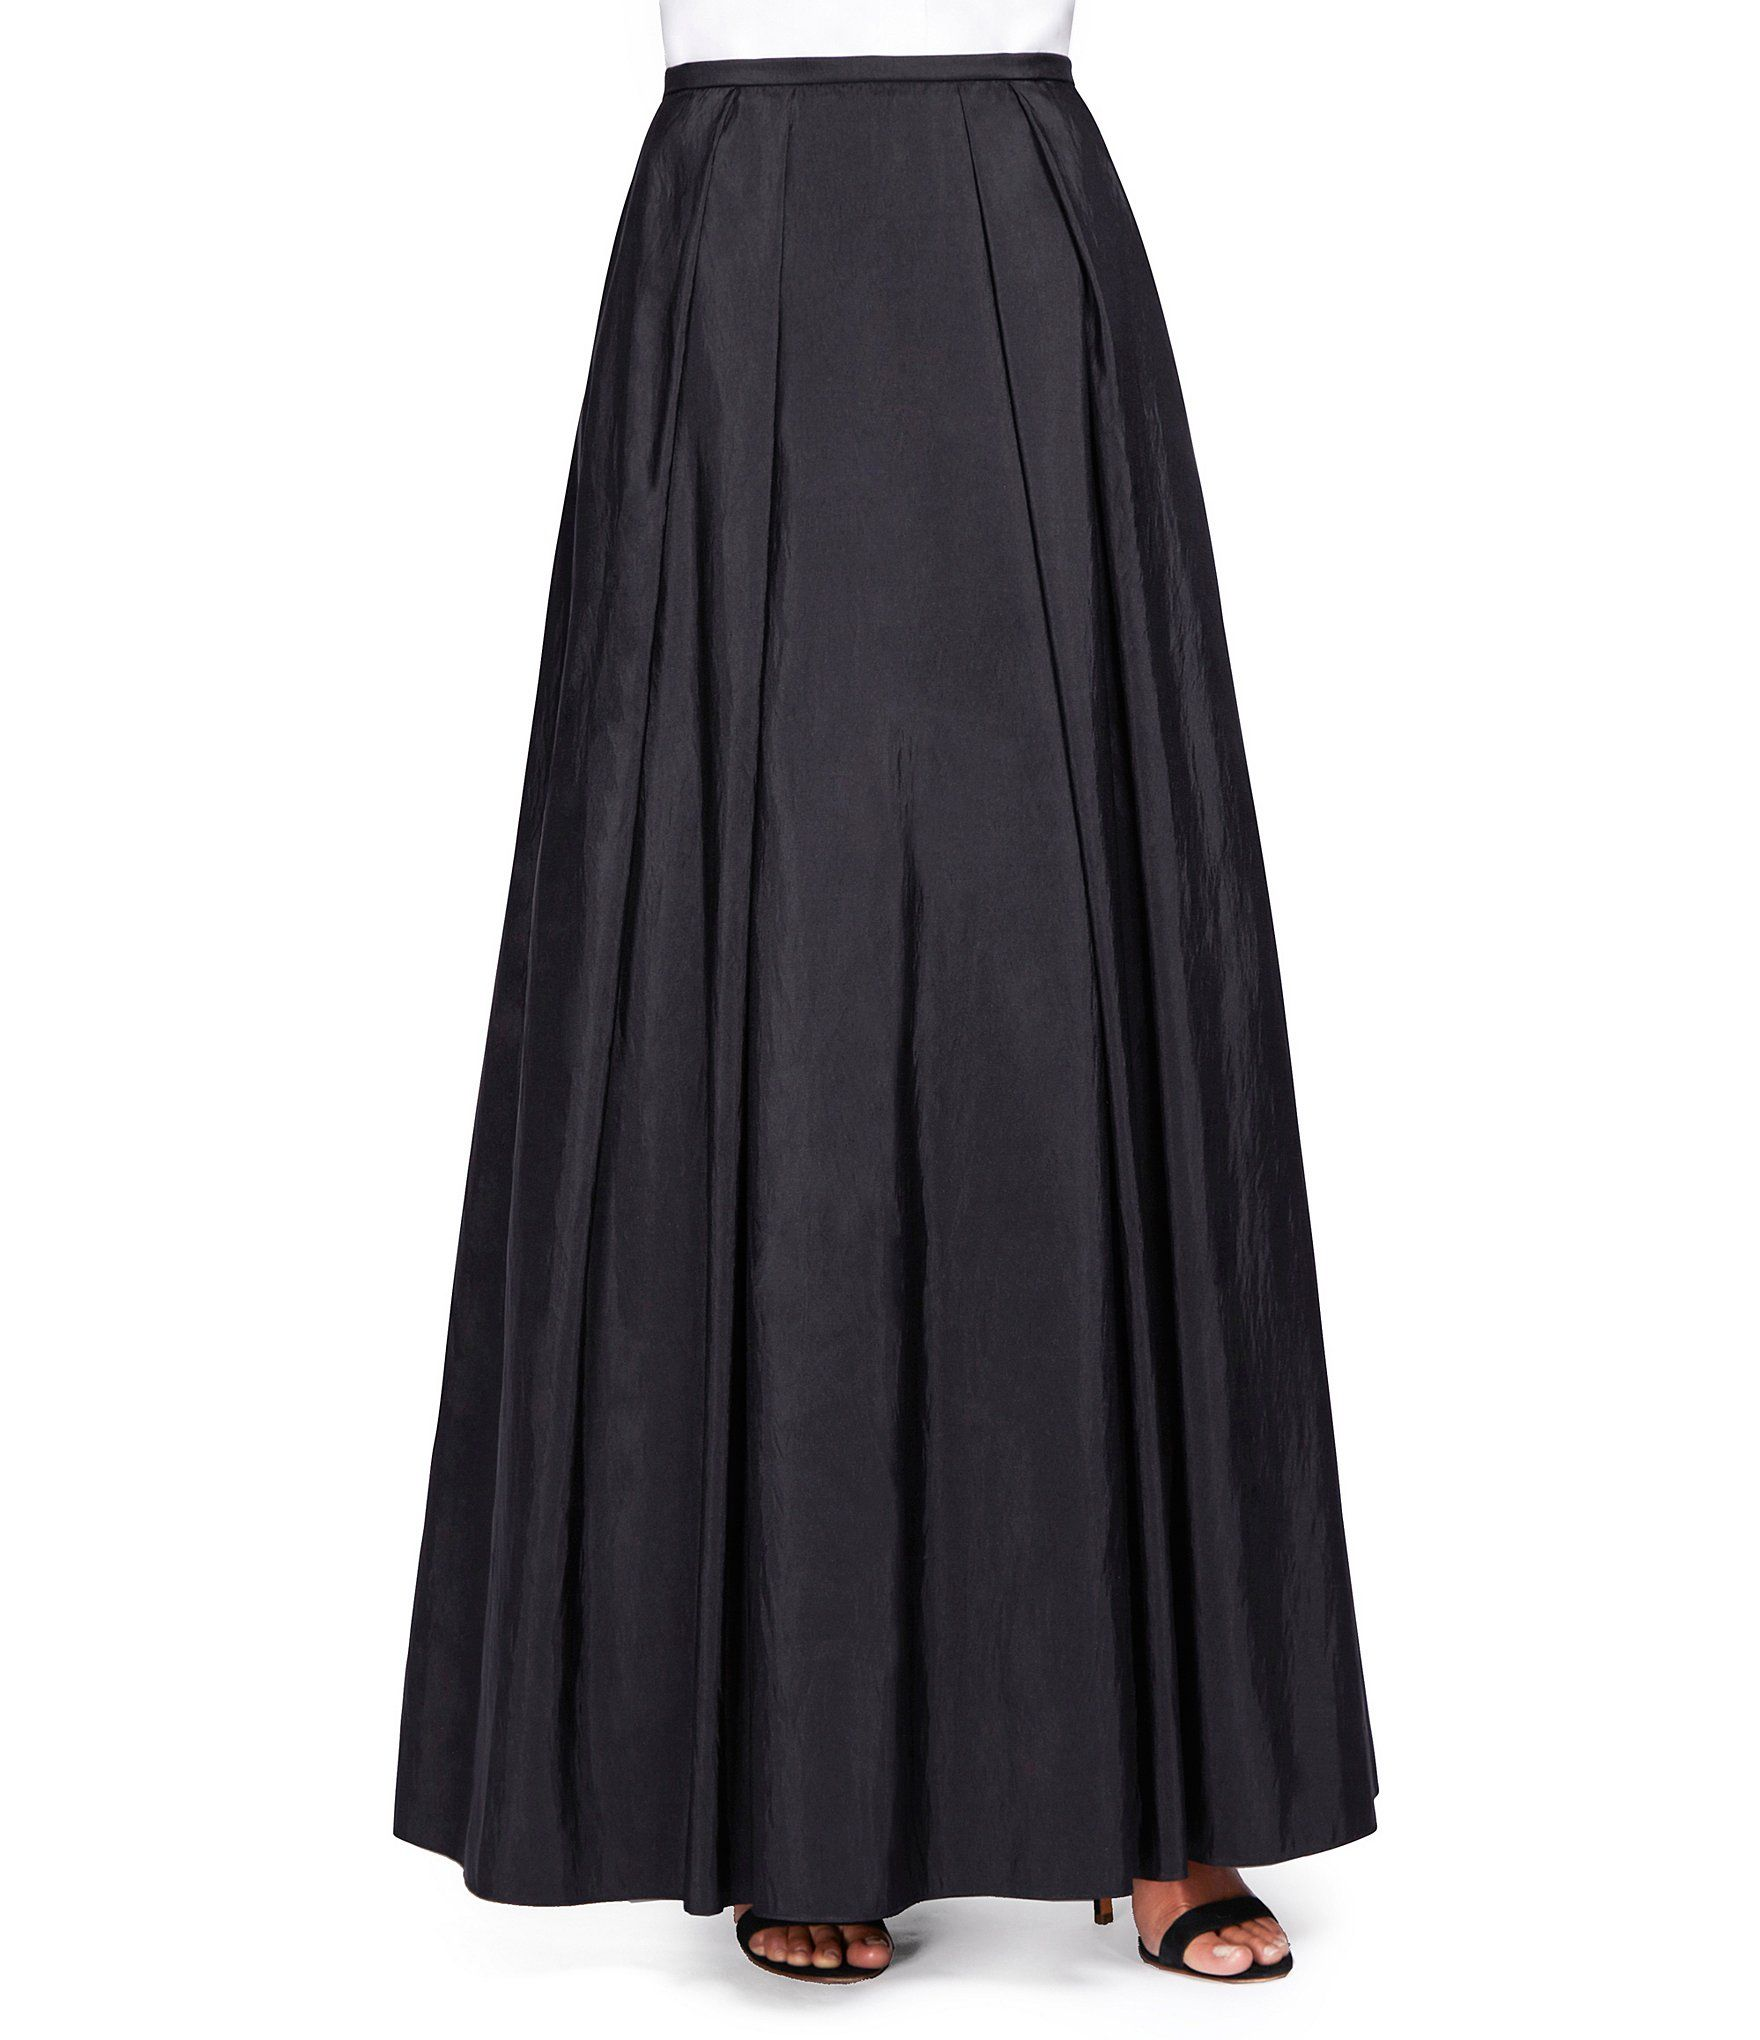 d4ad99d32a Shop for Alex Evenings Long Taffeta Full Skirt at Dillards.com. Visit  Dillards.com to find clothing, accessories, shoes, cosmetics & more.